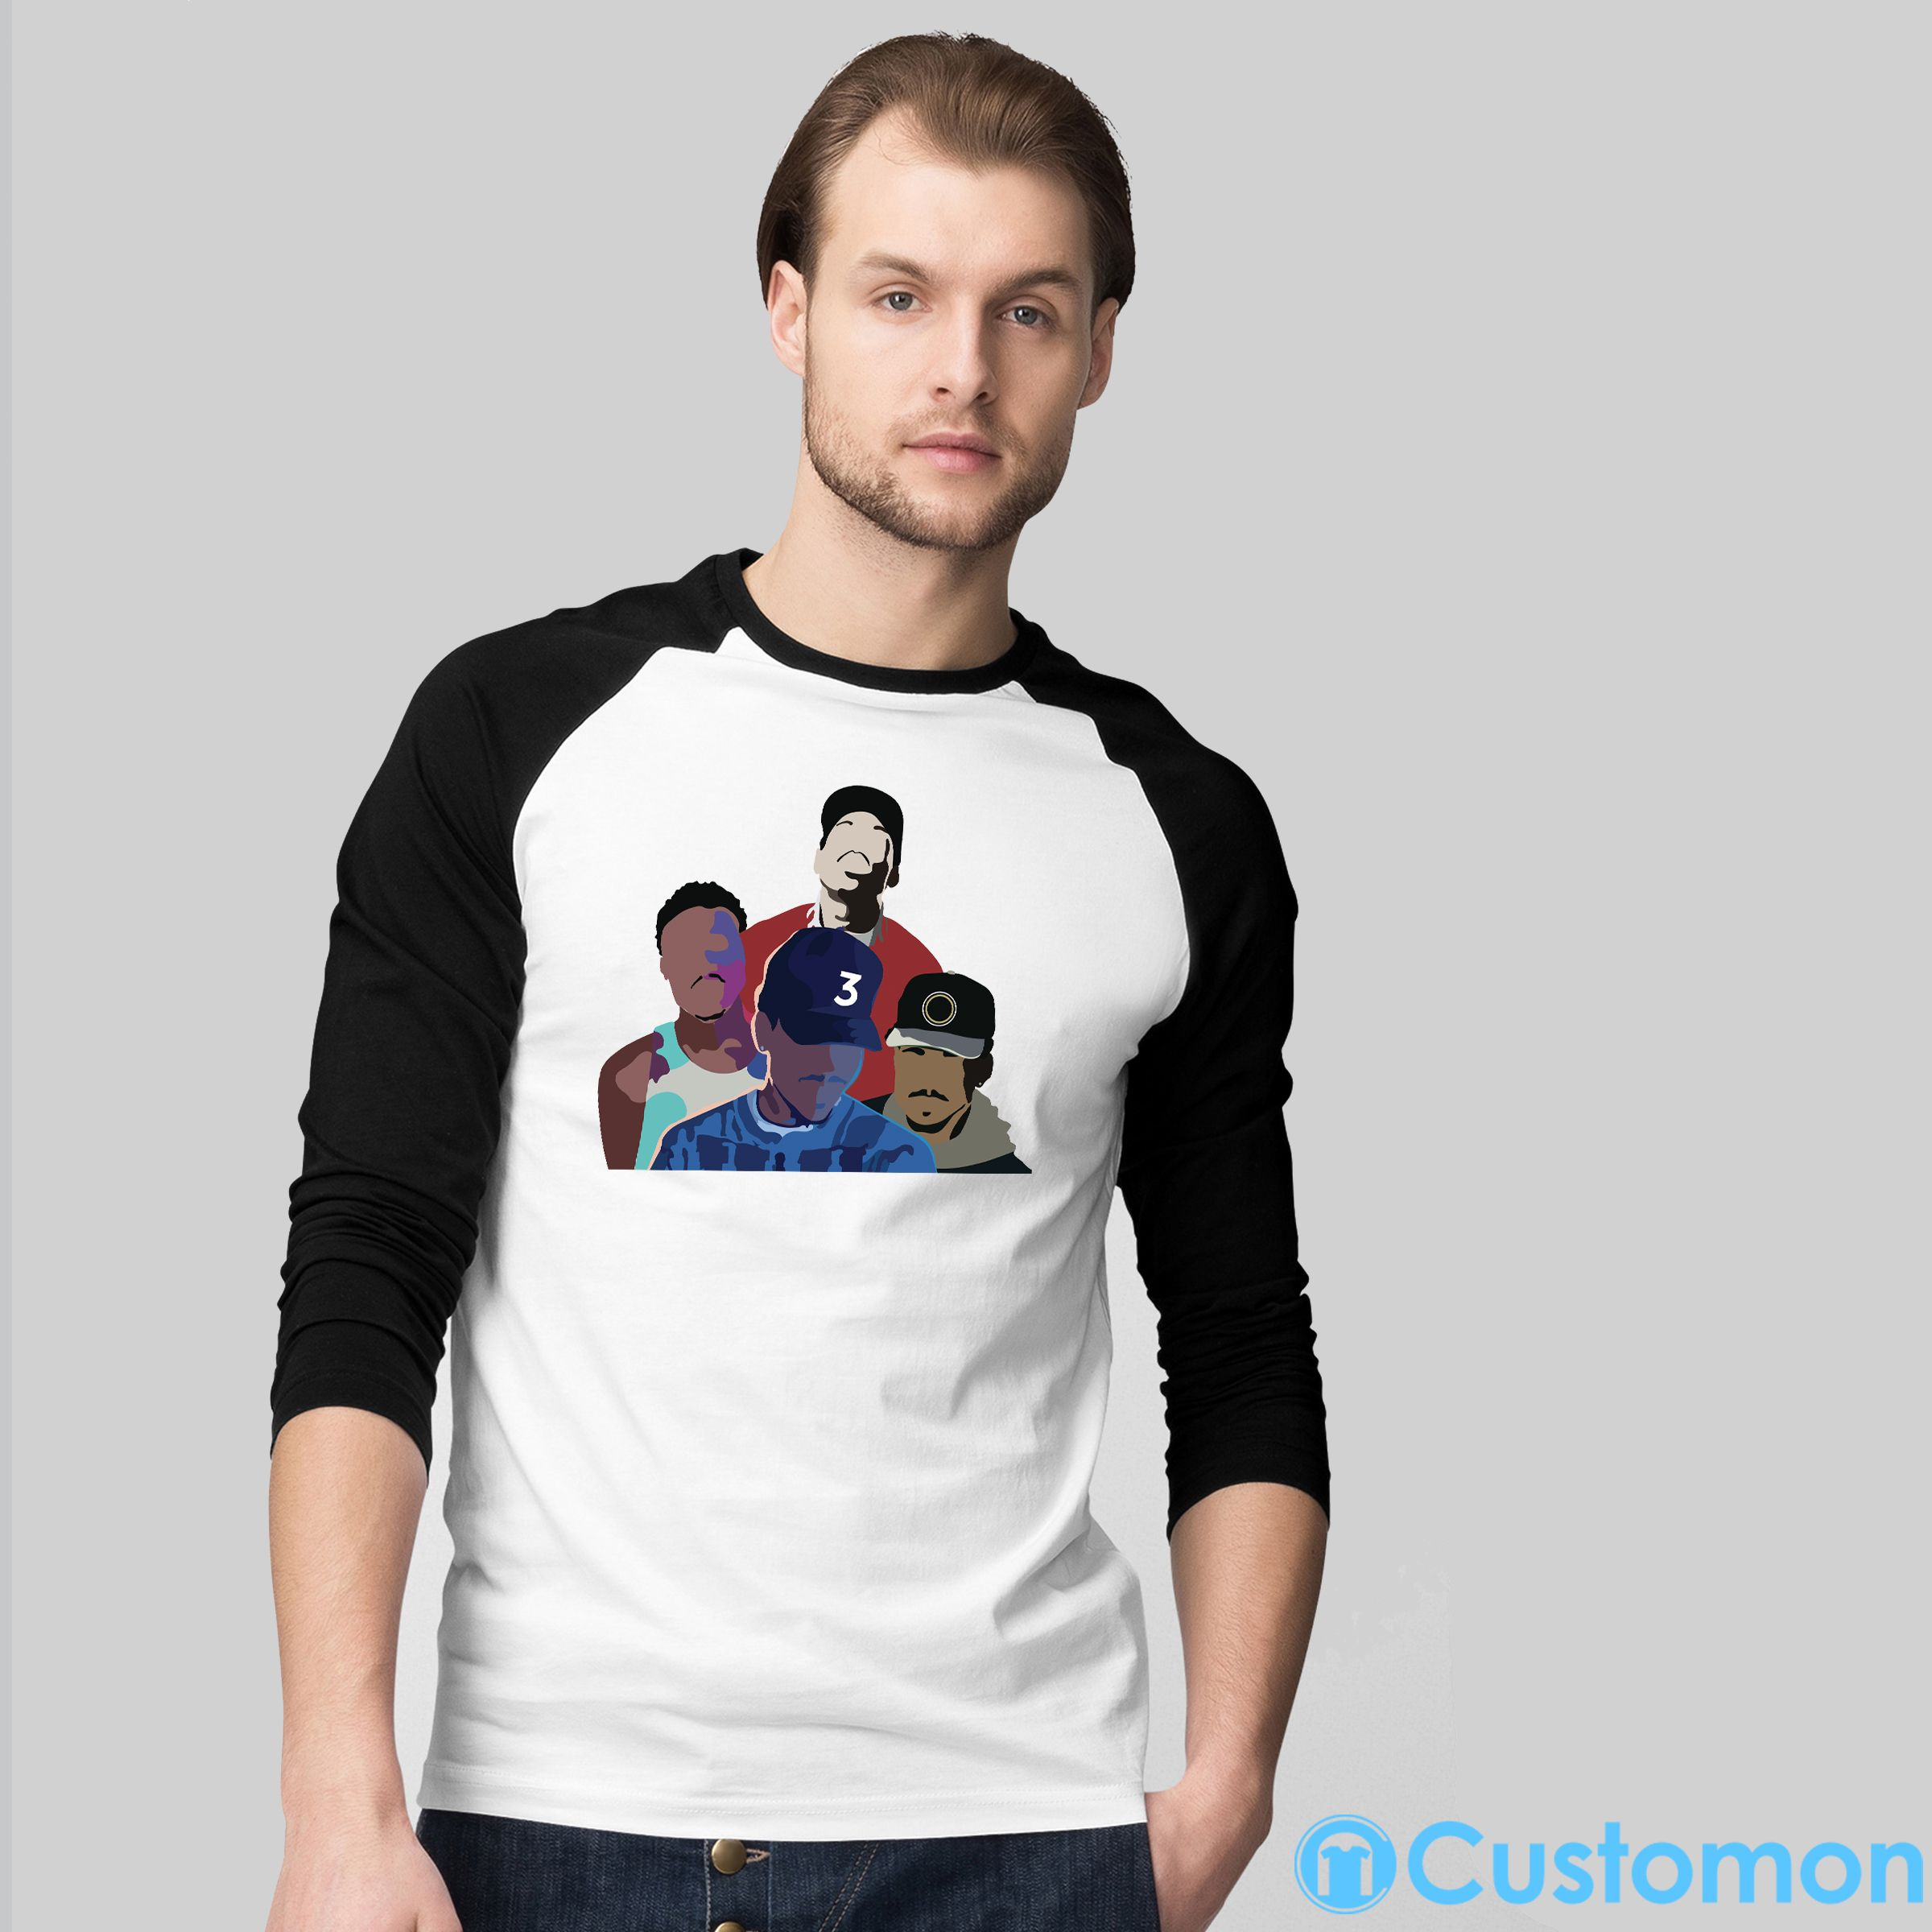 fd5e0e84 Chance the rapper Baseball T-shirt | New Year's Eve Gift Ideas ...